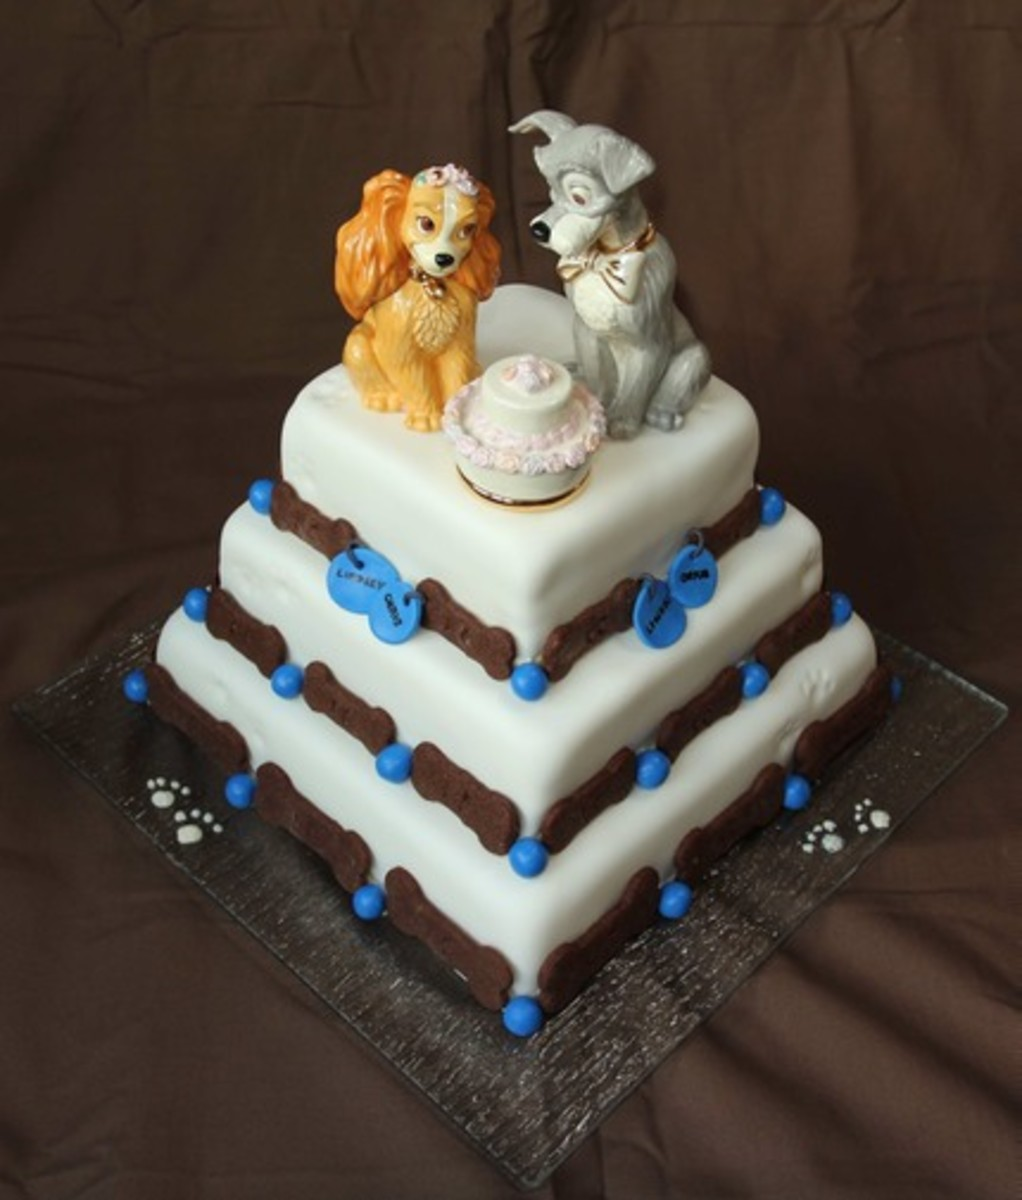 Specially created for a couple who are animal lovers